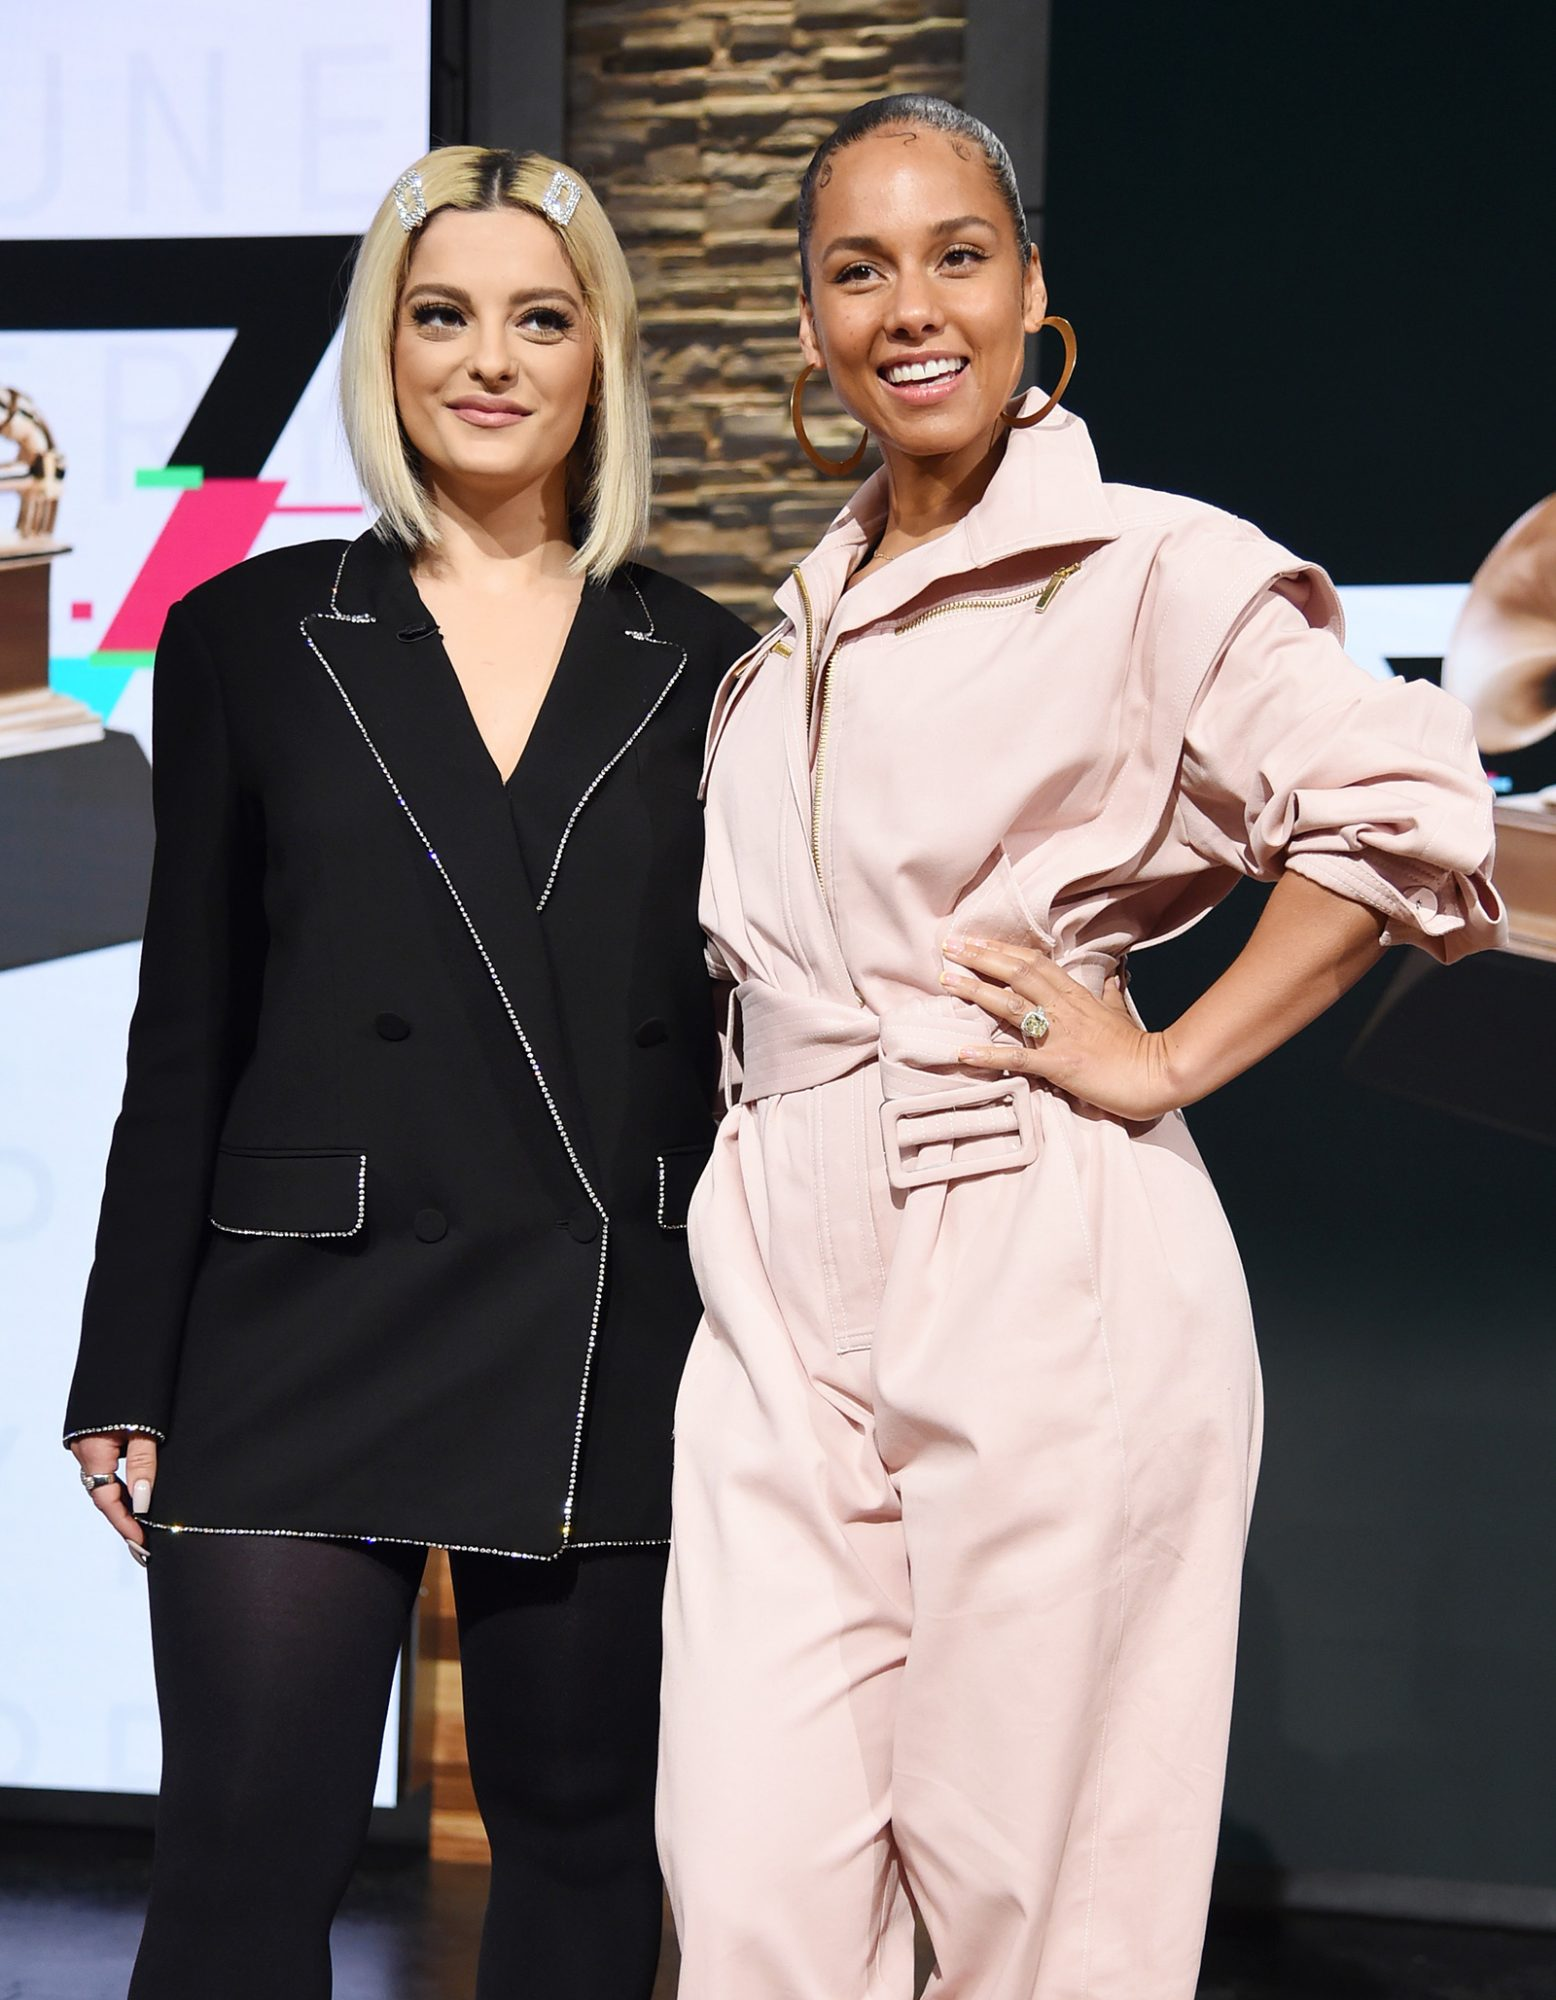 Bebe Rexha and Alicia Keys pose at the 62nd Grammy Awards Nominations at CBS Broadcast Center on November 20, 2019 in New York City